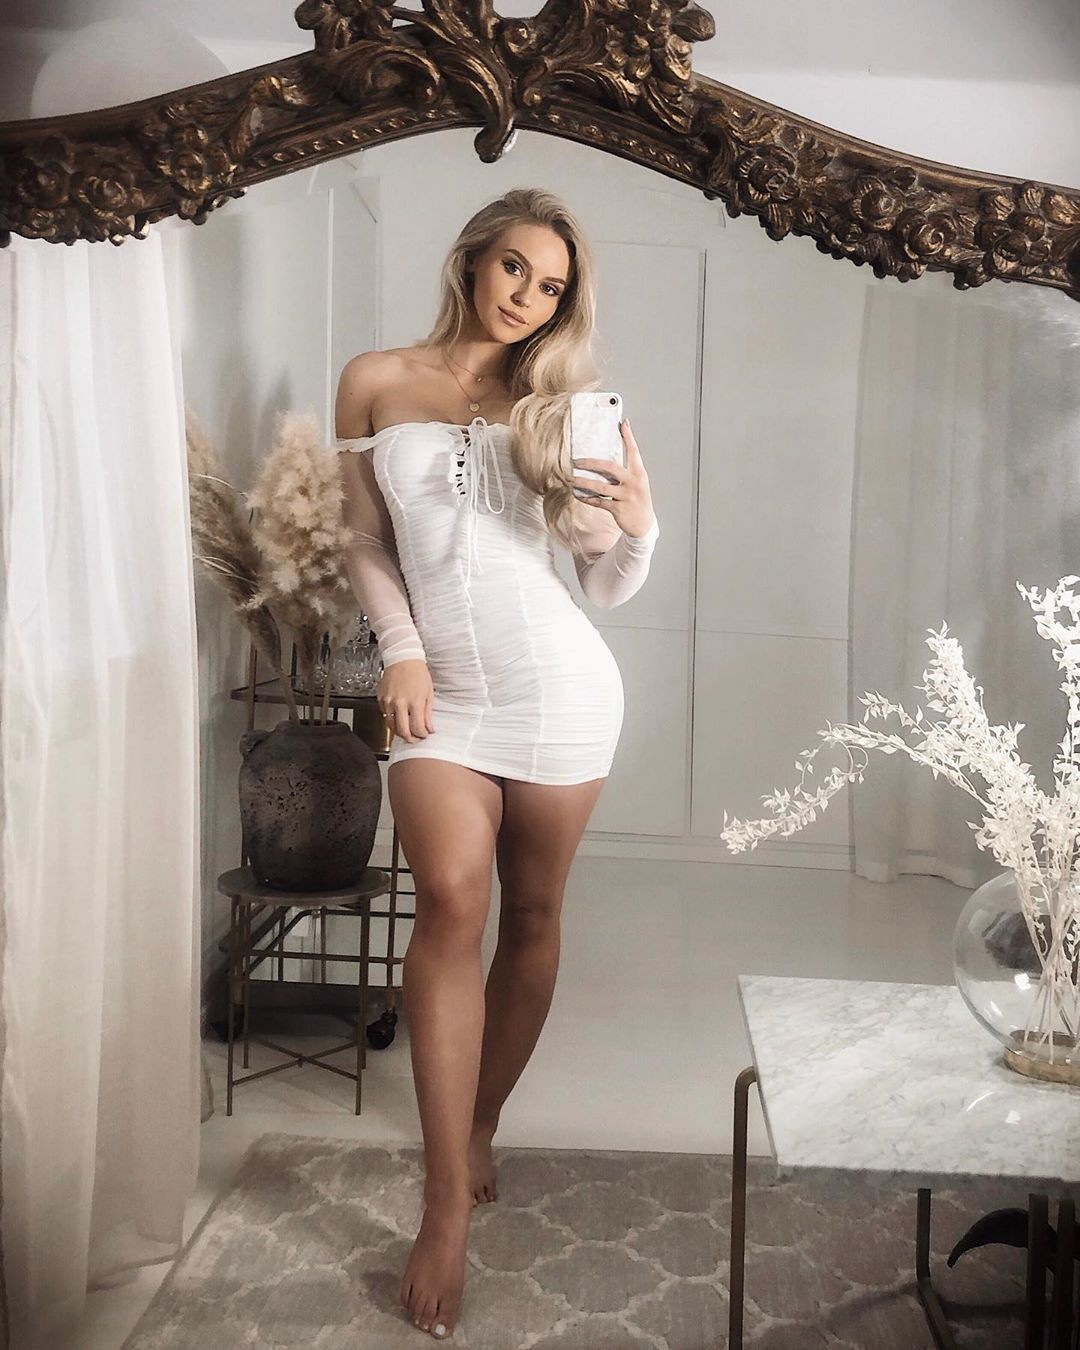 Take a look at the Anna Nystrom, Photo shoot